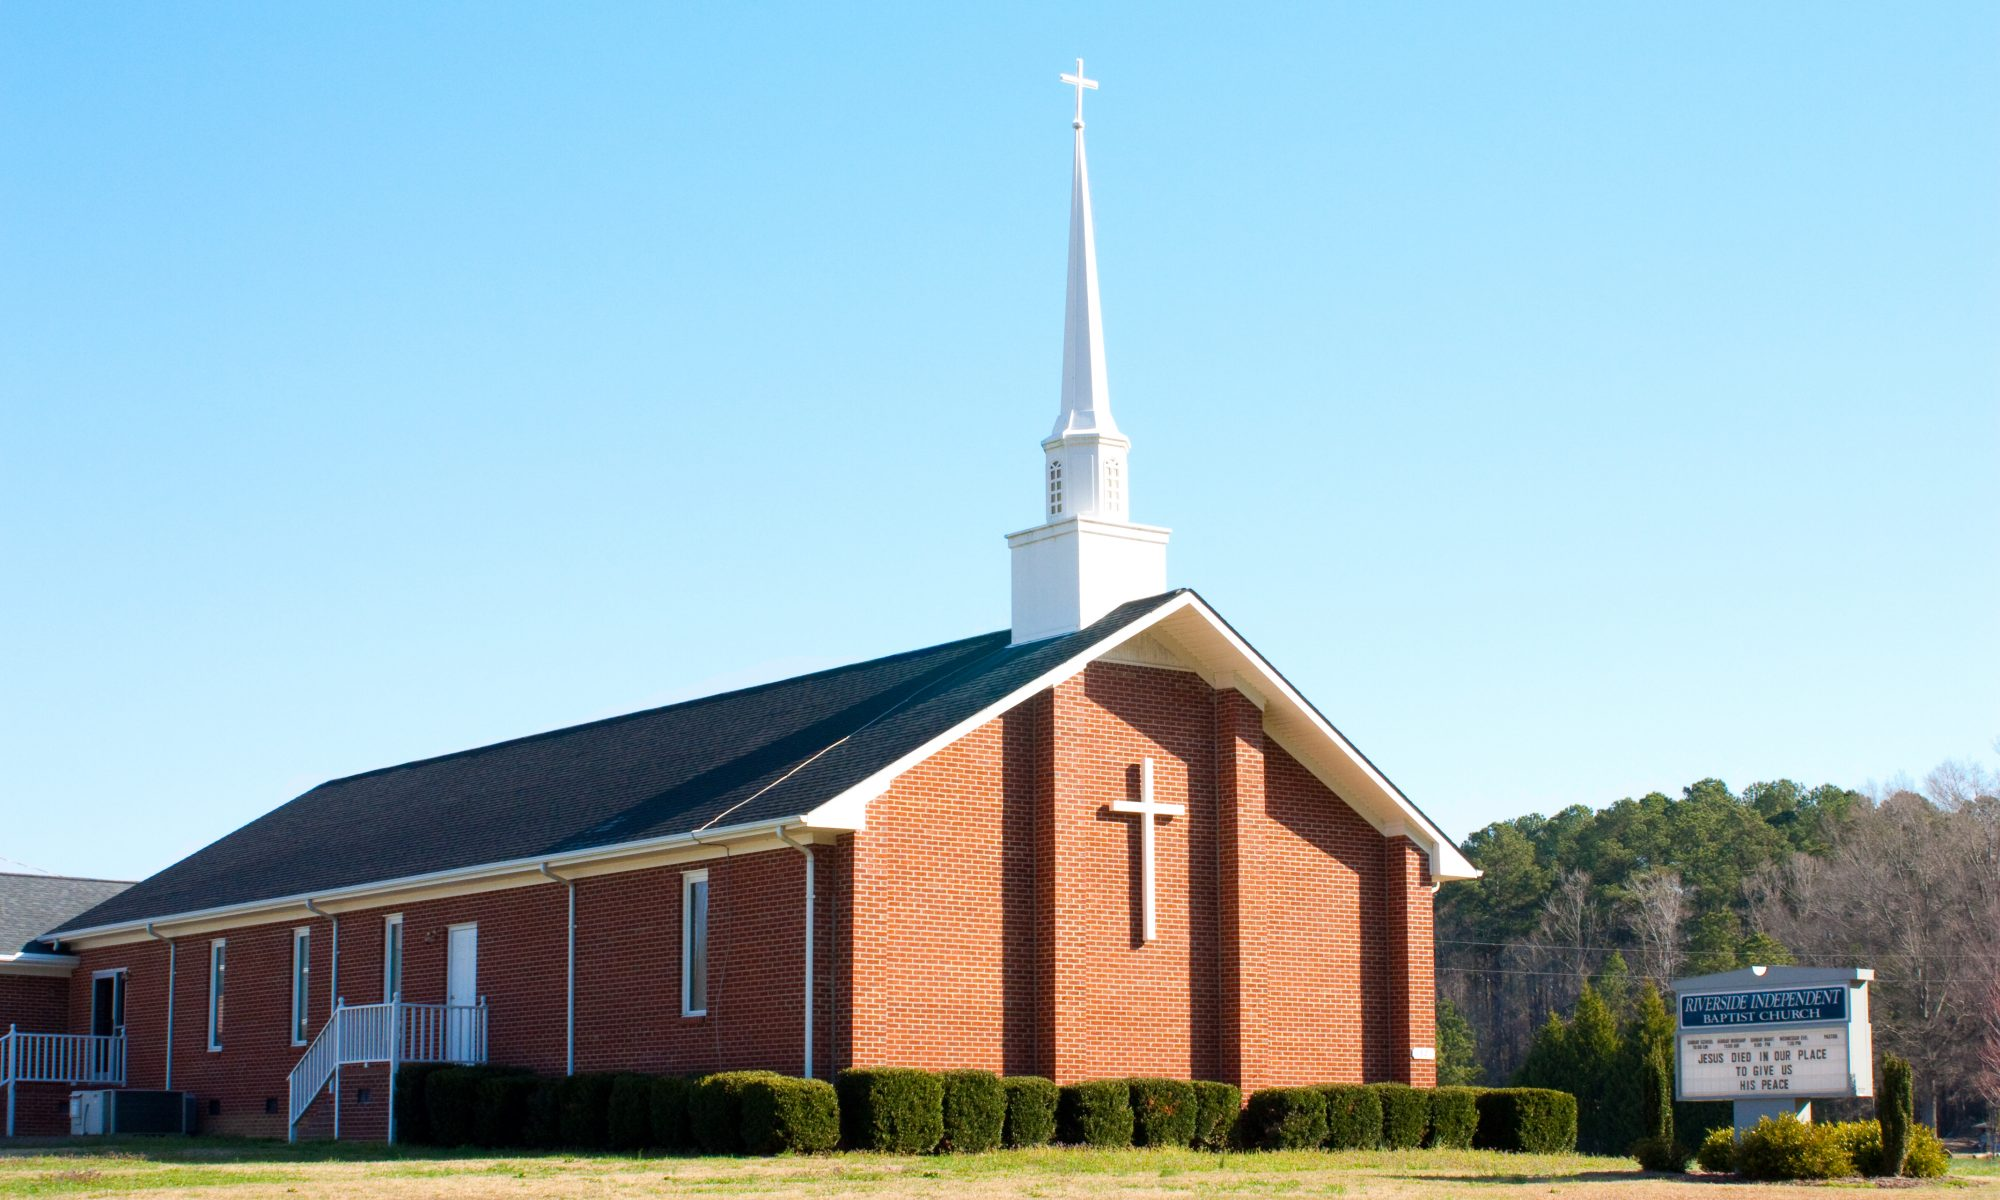 Churches For Sale In Tampa >> Large Church For Sale In Tampa Holds 350 People 2 200 000